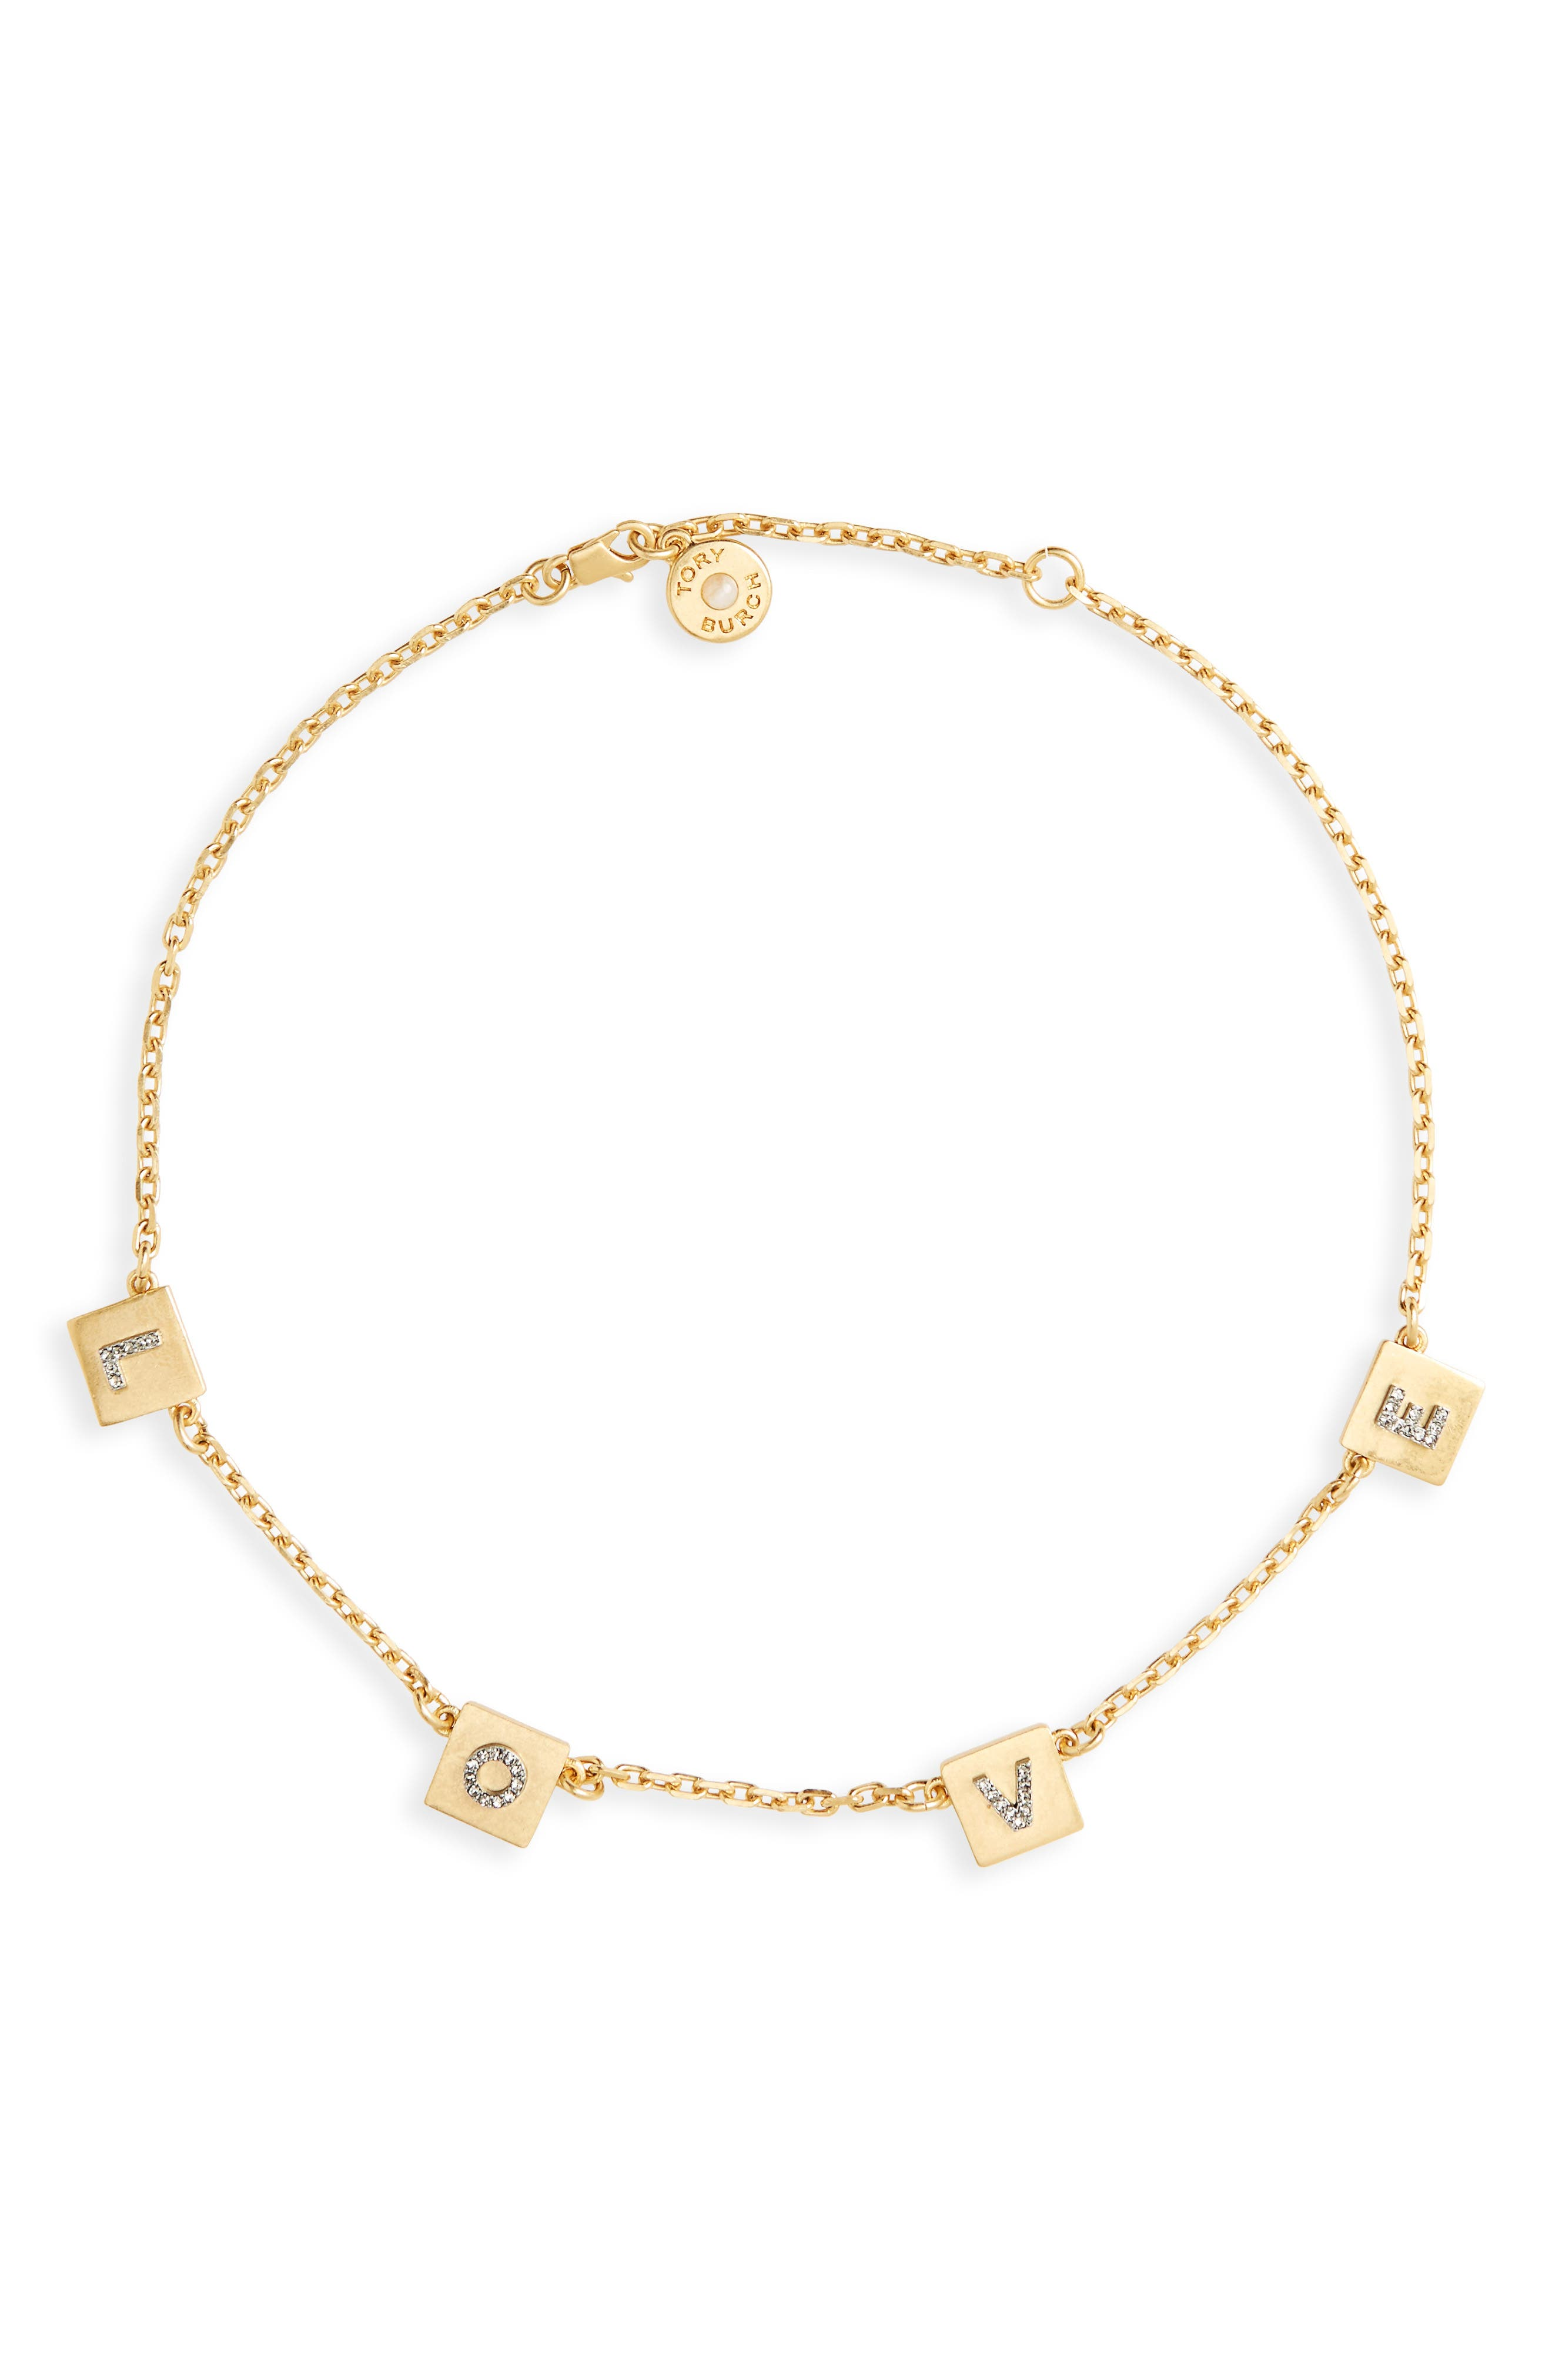 Main Image - Tory Burch Love Message Collar Necklace